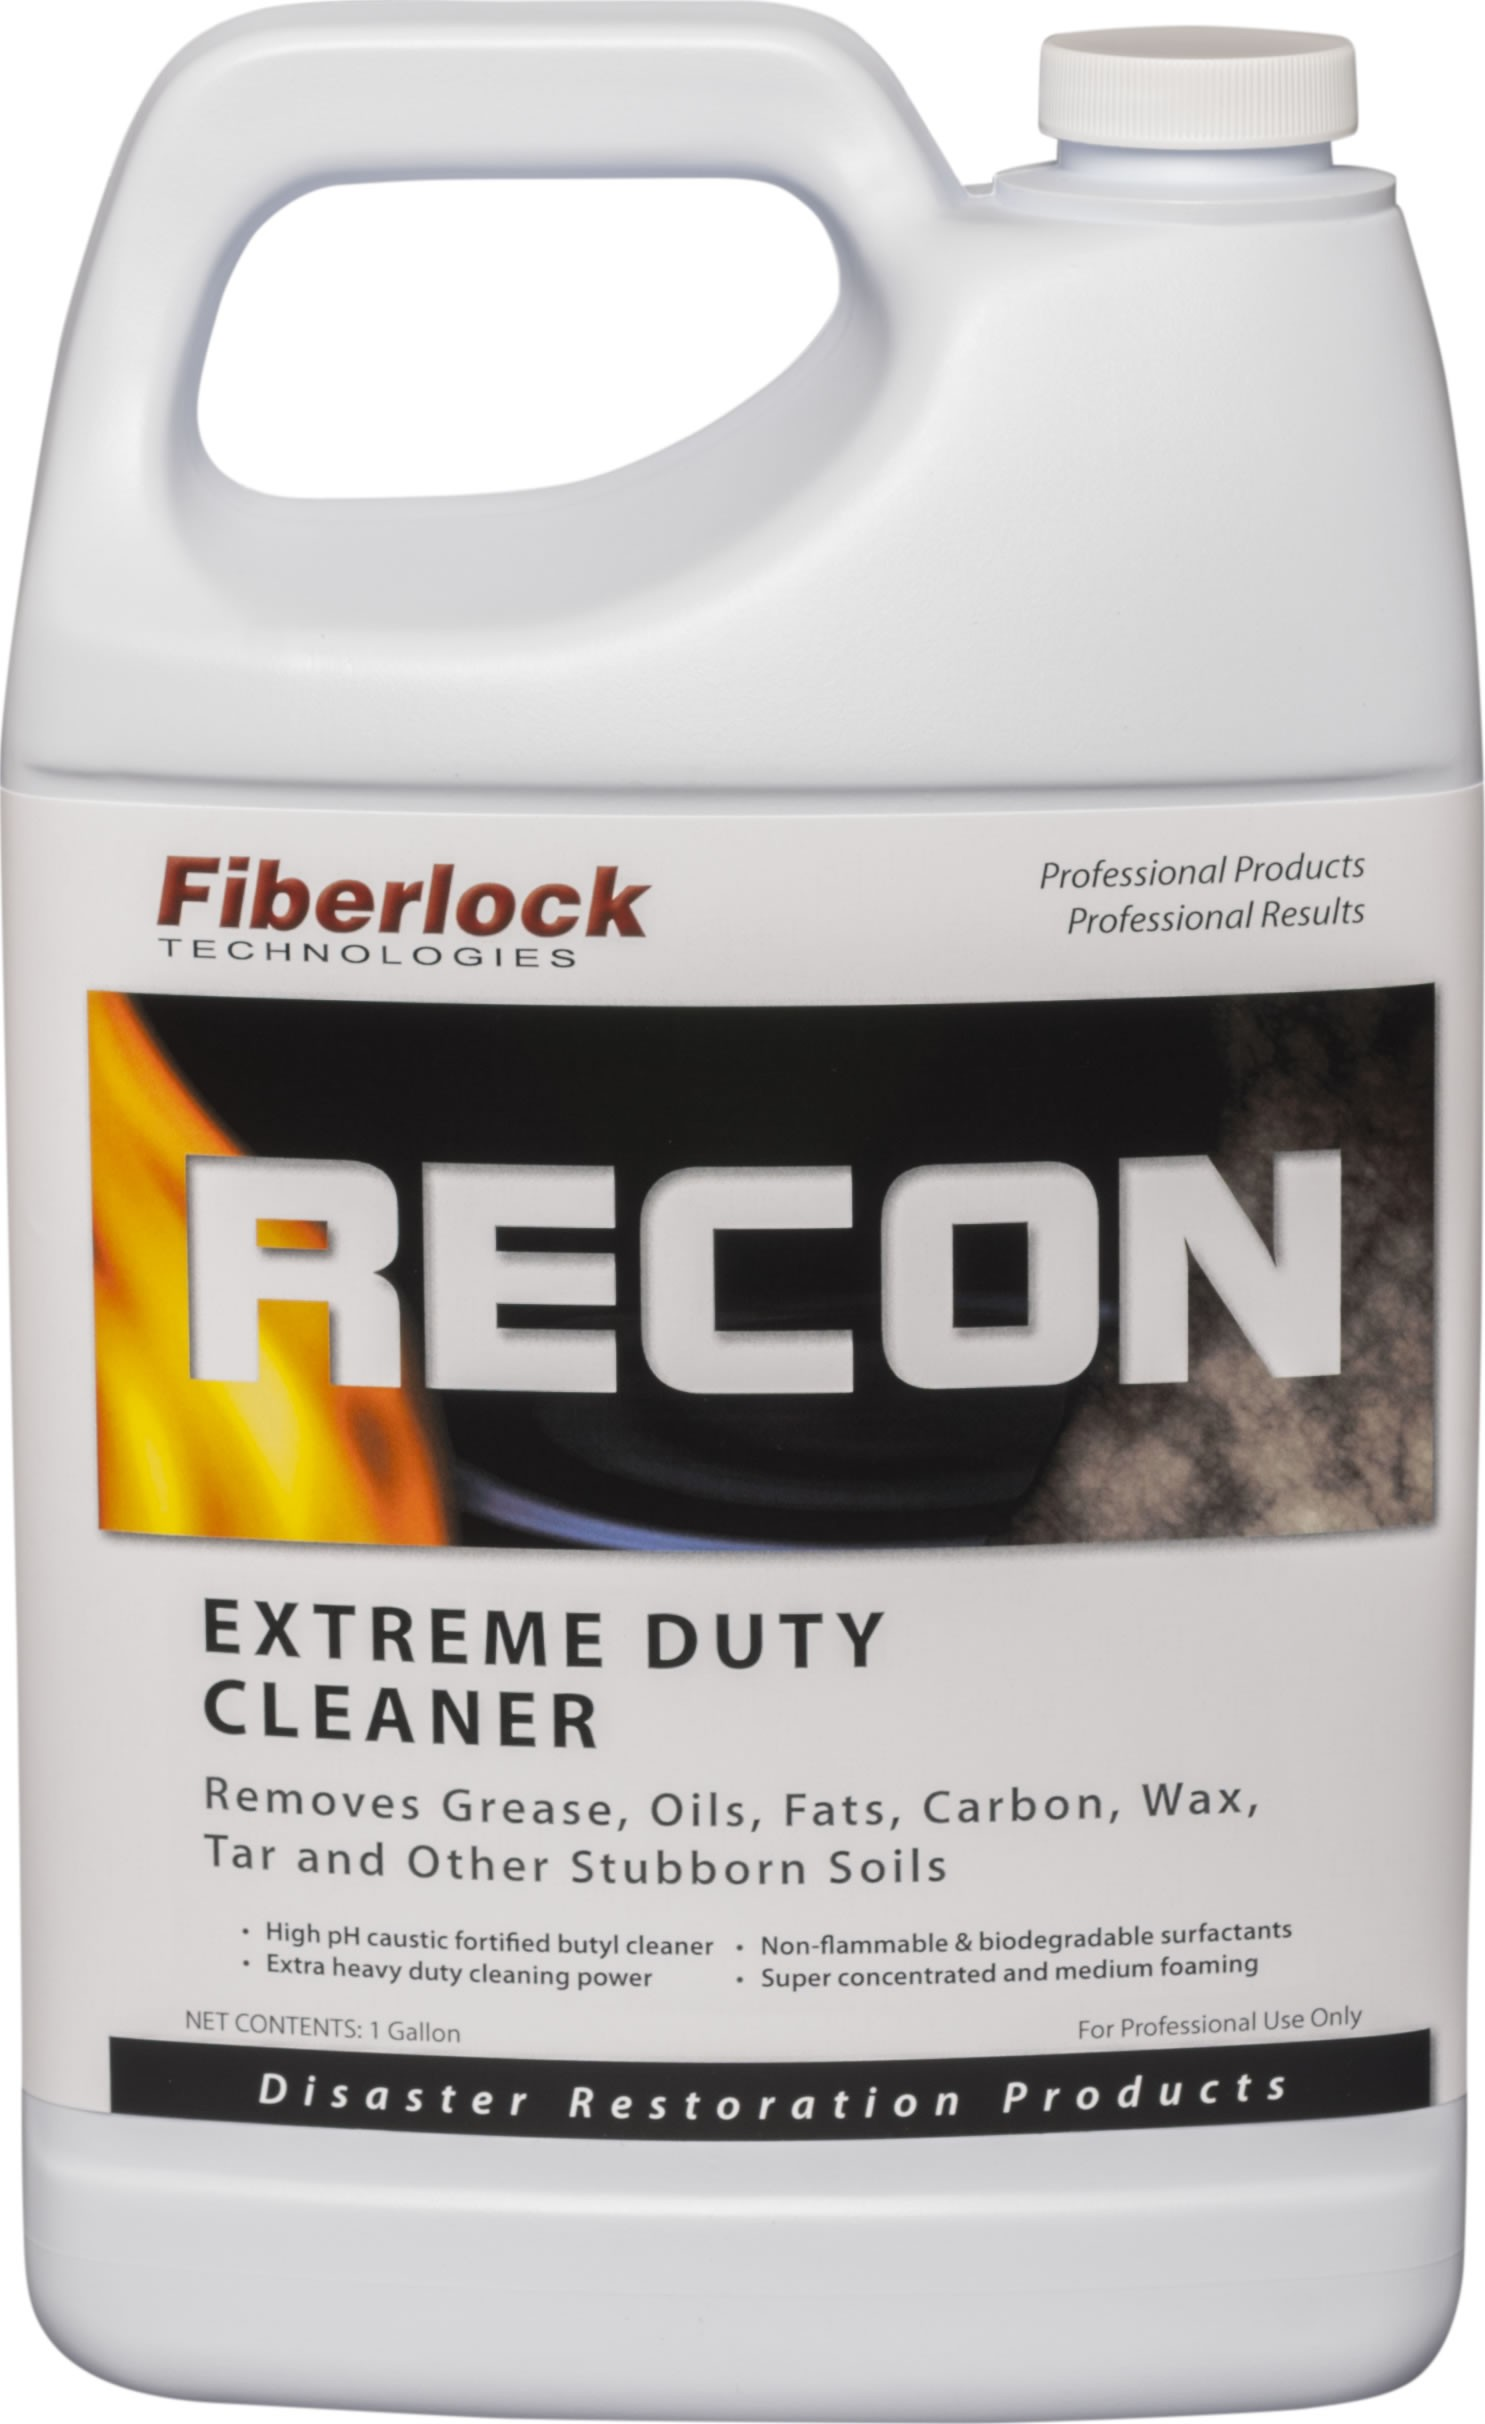 Fiberlock RECON Extreme Duty Cleaner 1G (4/Case)